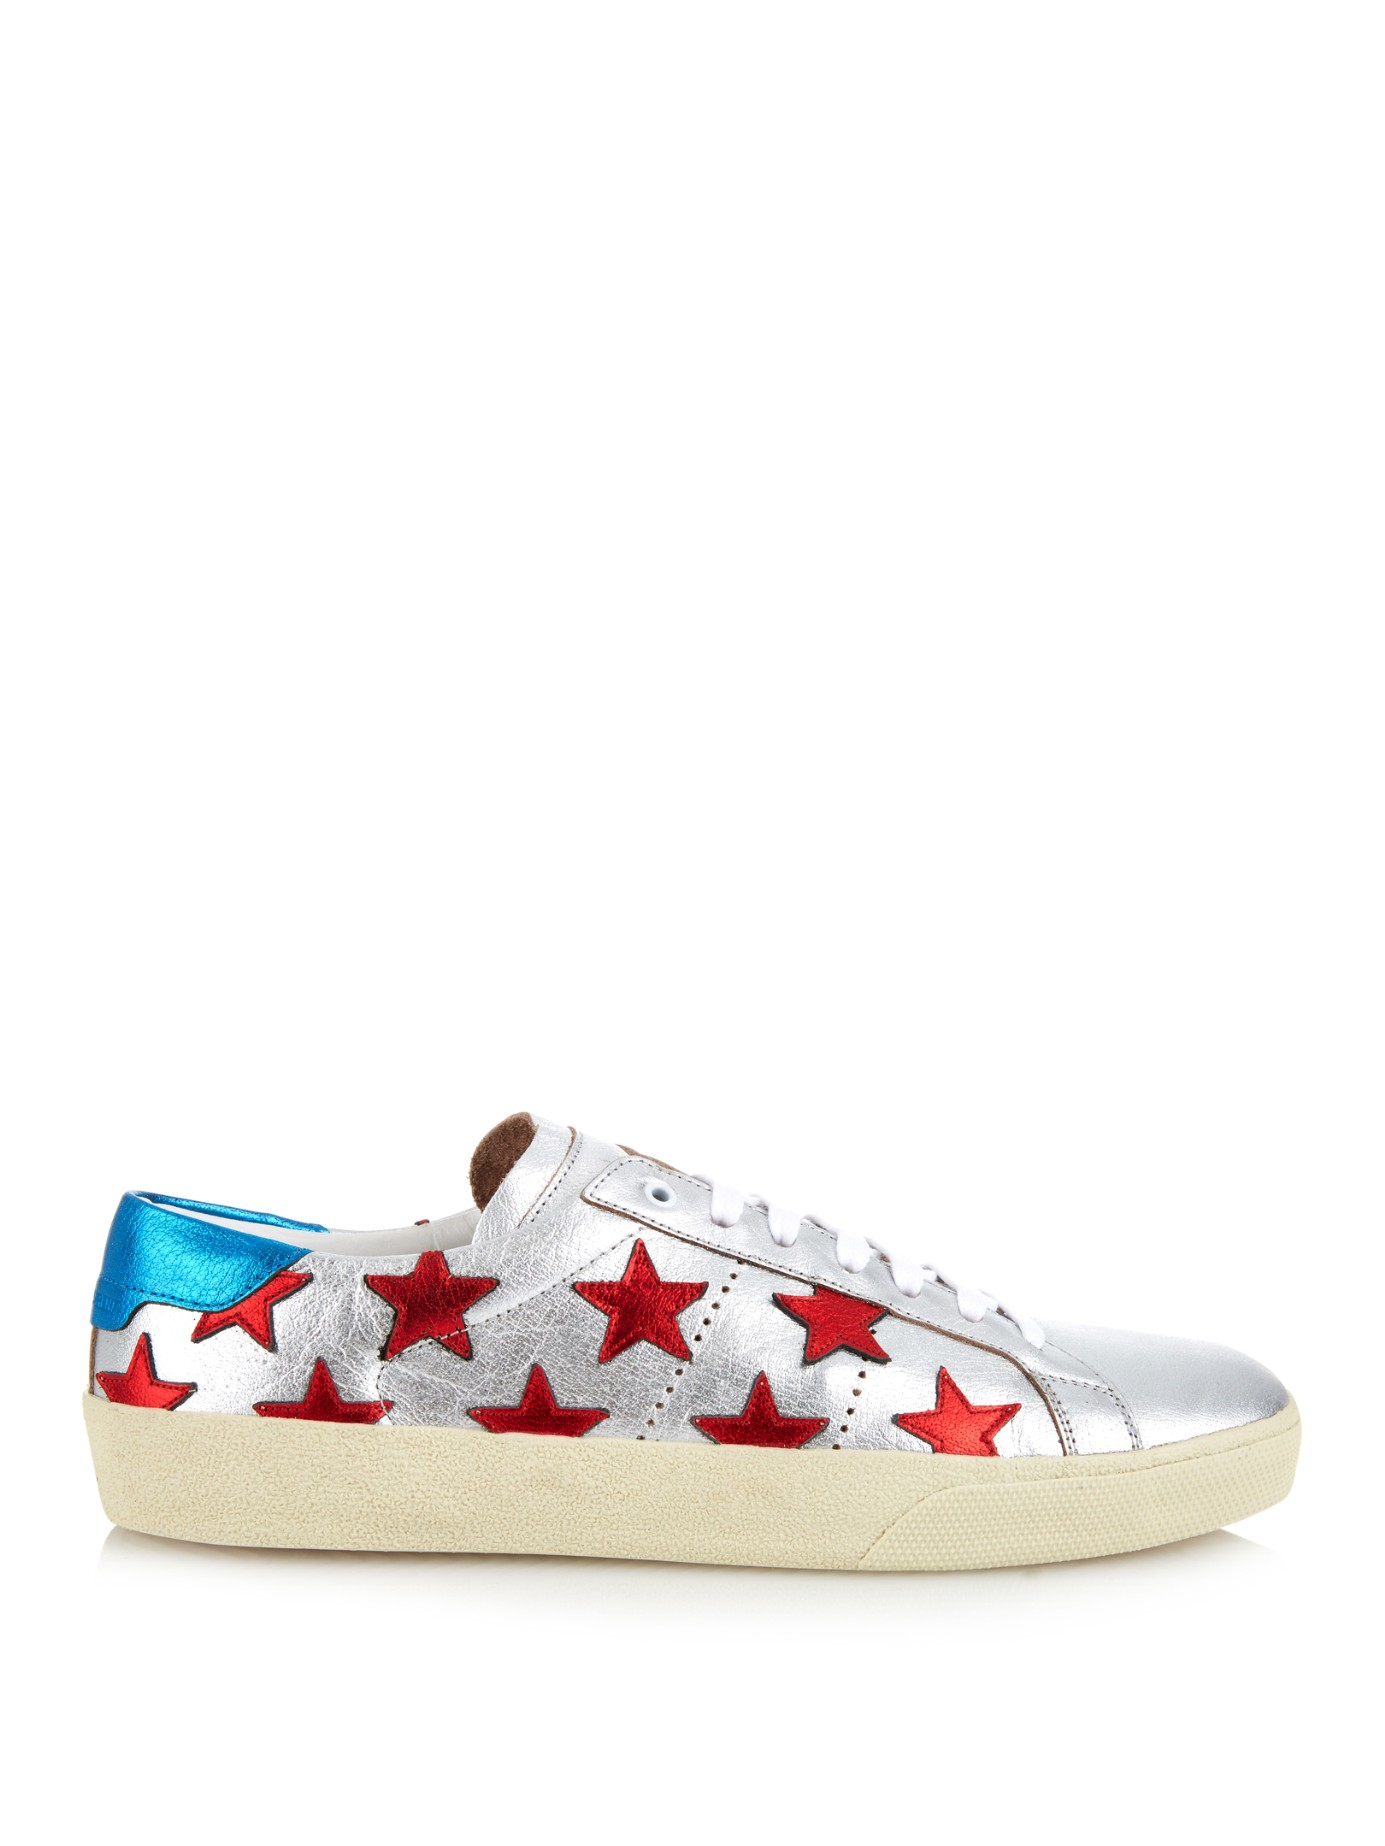 a2a6115c9e48 Lyst - Saint Laurent Star-Embellished Leather Sneakers in Red